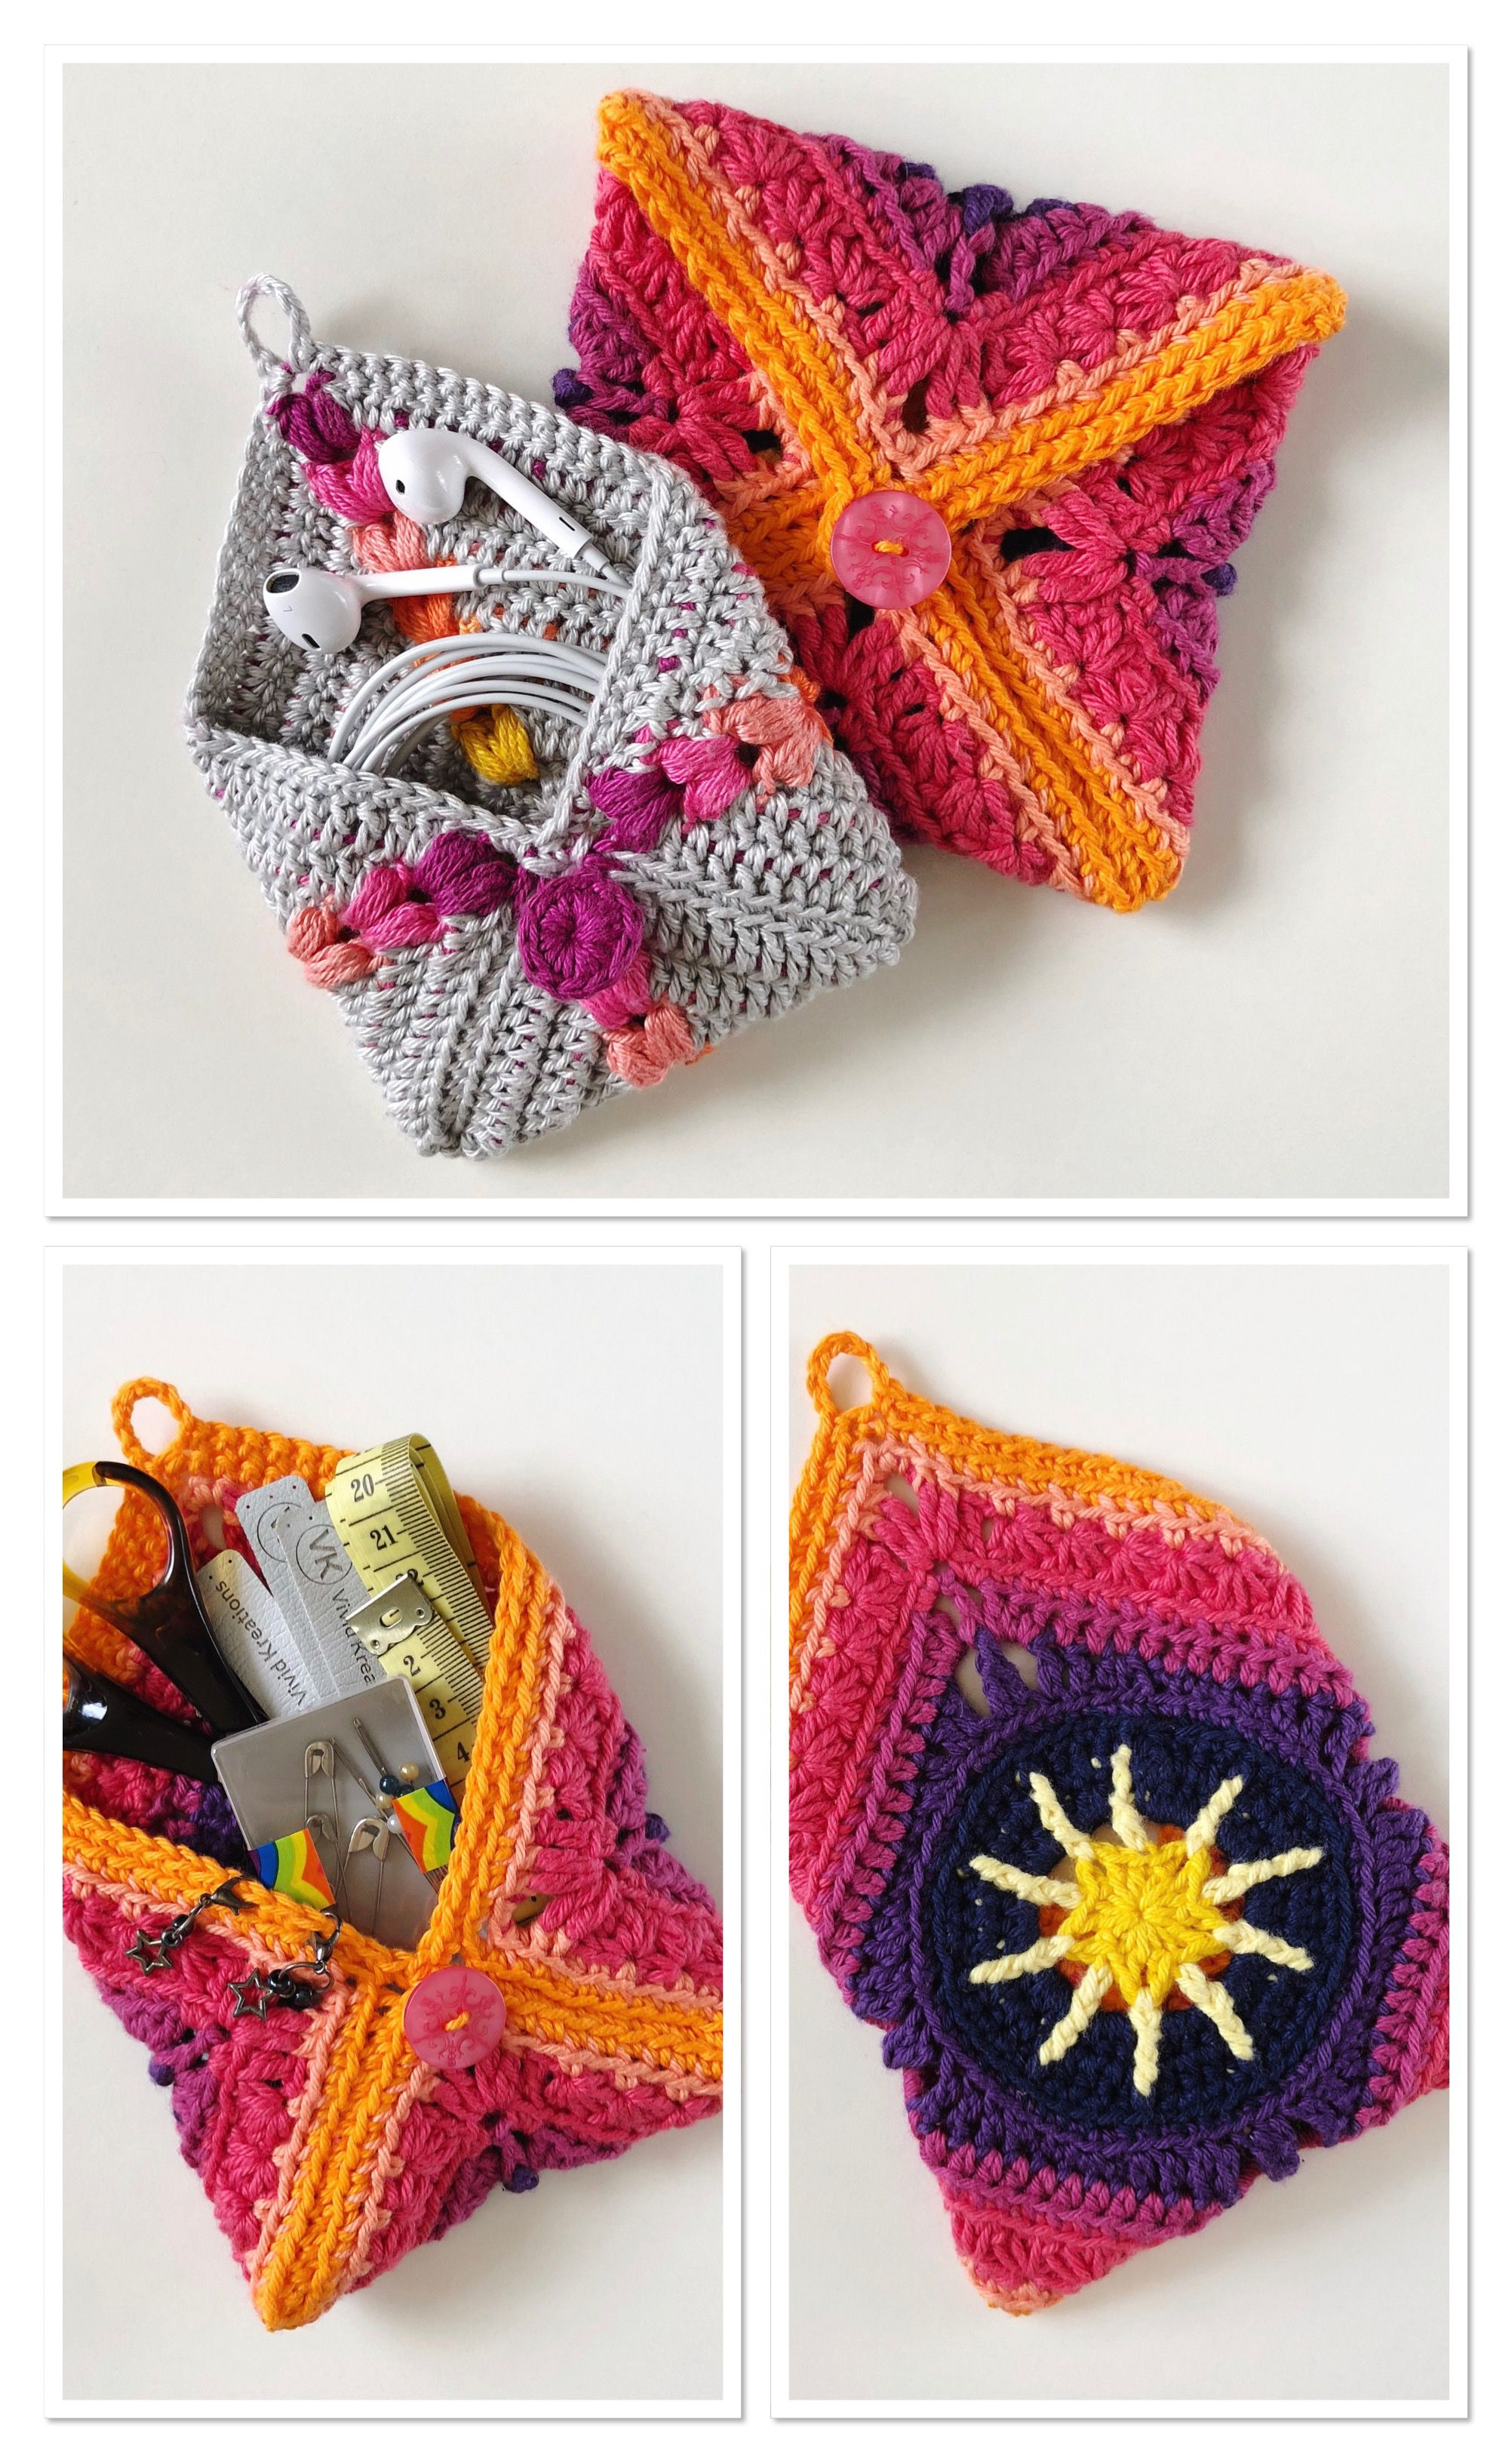 Crochet Pattern. Crochet Pouch Tutorial. Instant digital download